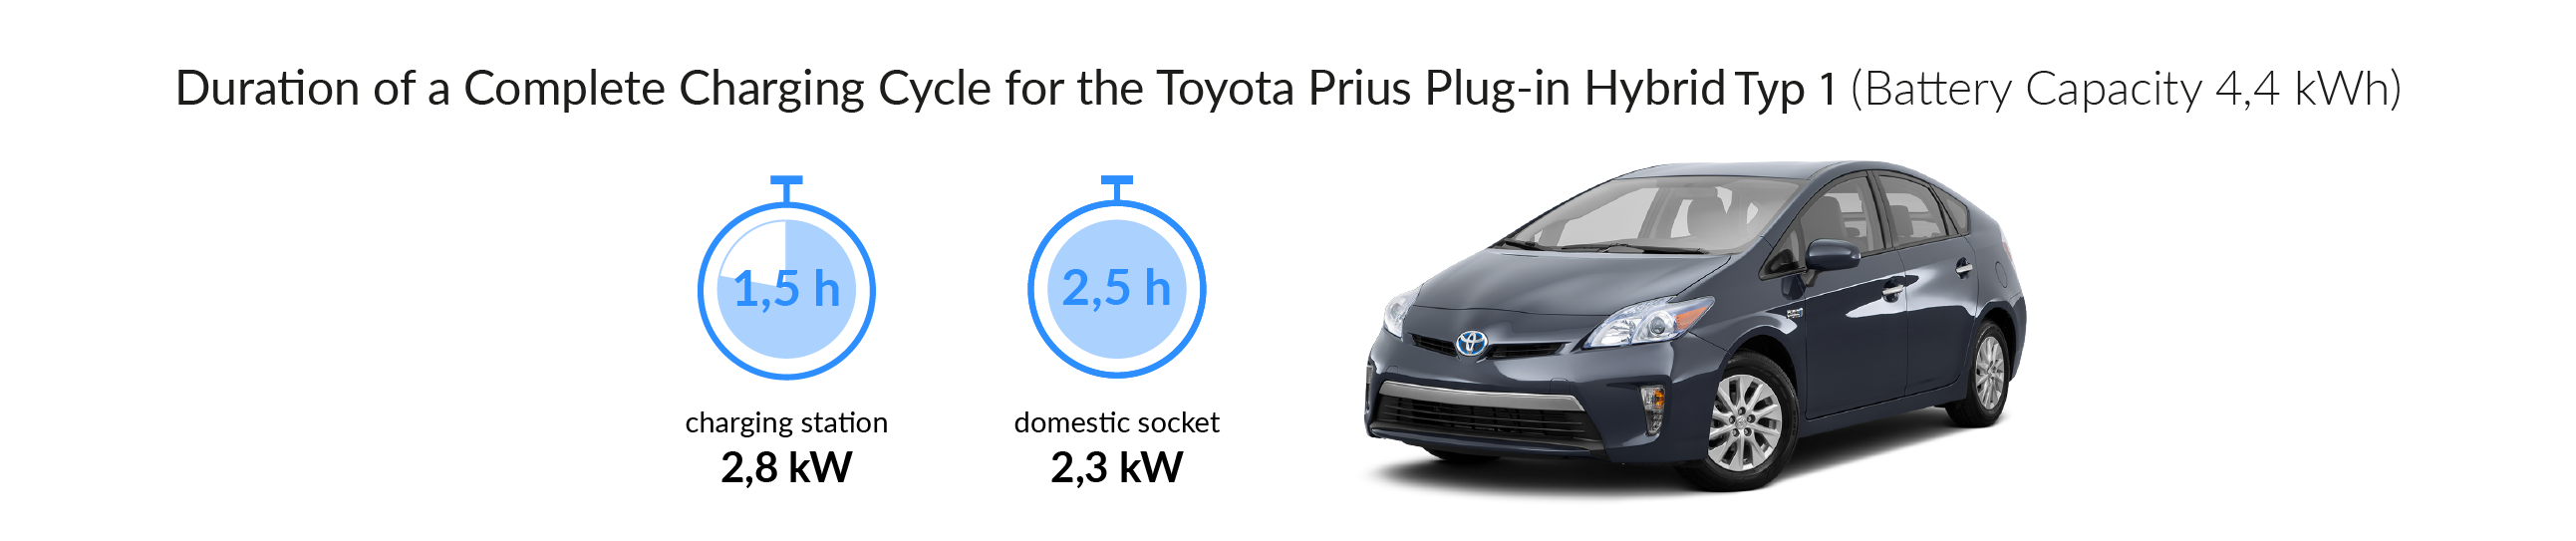 Charging time for the Toyota Prius Plug-In Hybrid (Type 1)